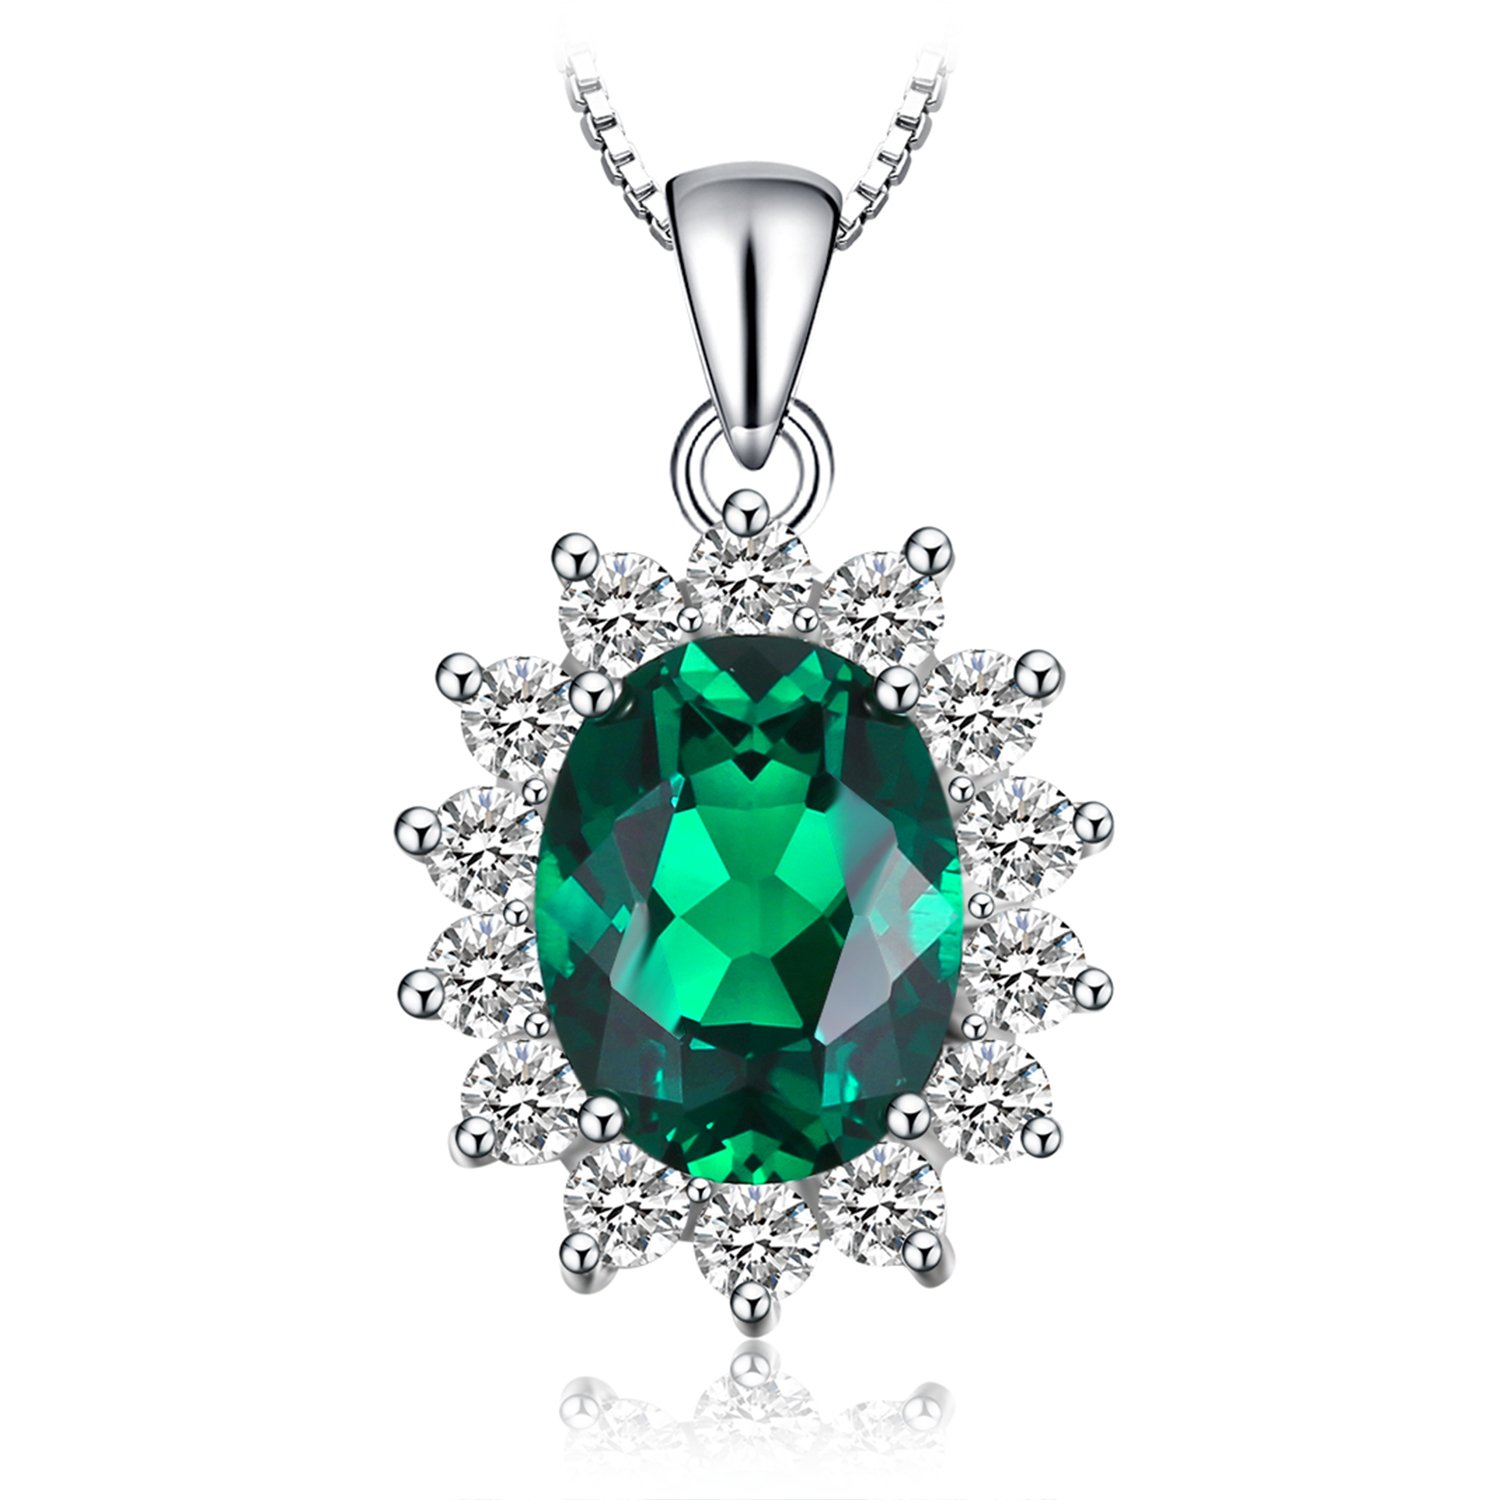 JewelryPalace Princess Diana William Kate Created Sapphire Emerald Gemstone Pendant Necklace 925 Sterling Silver